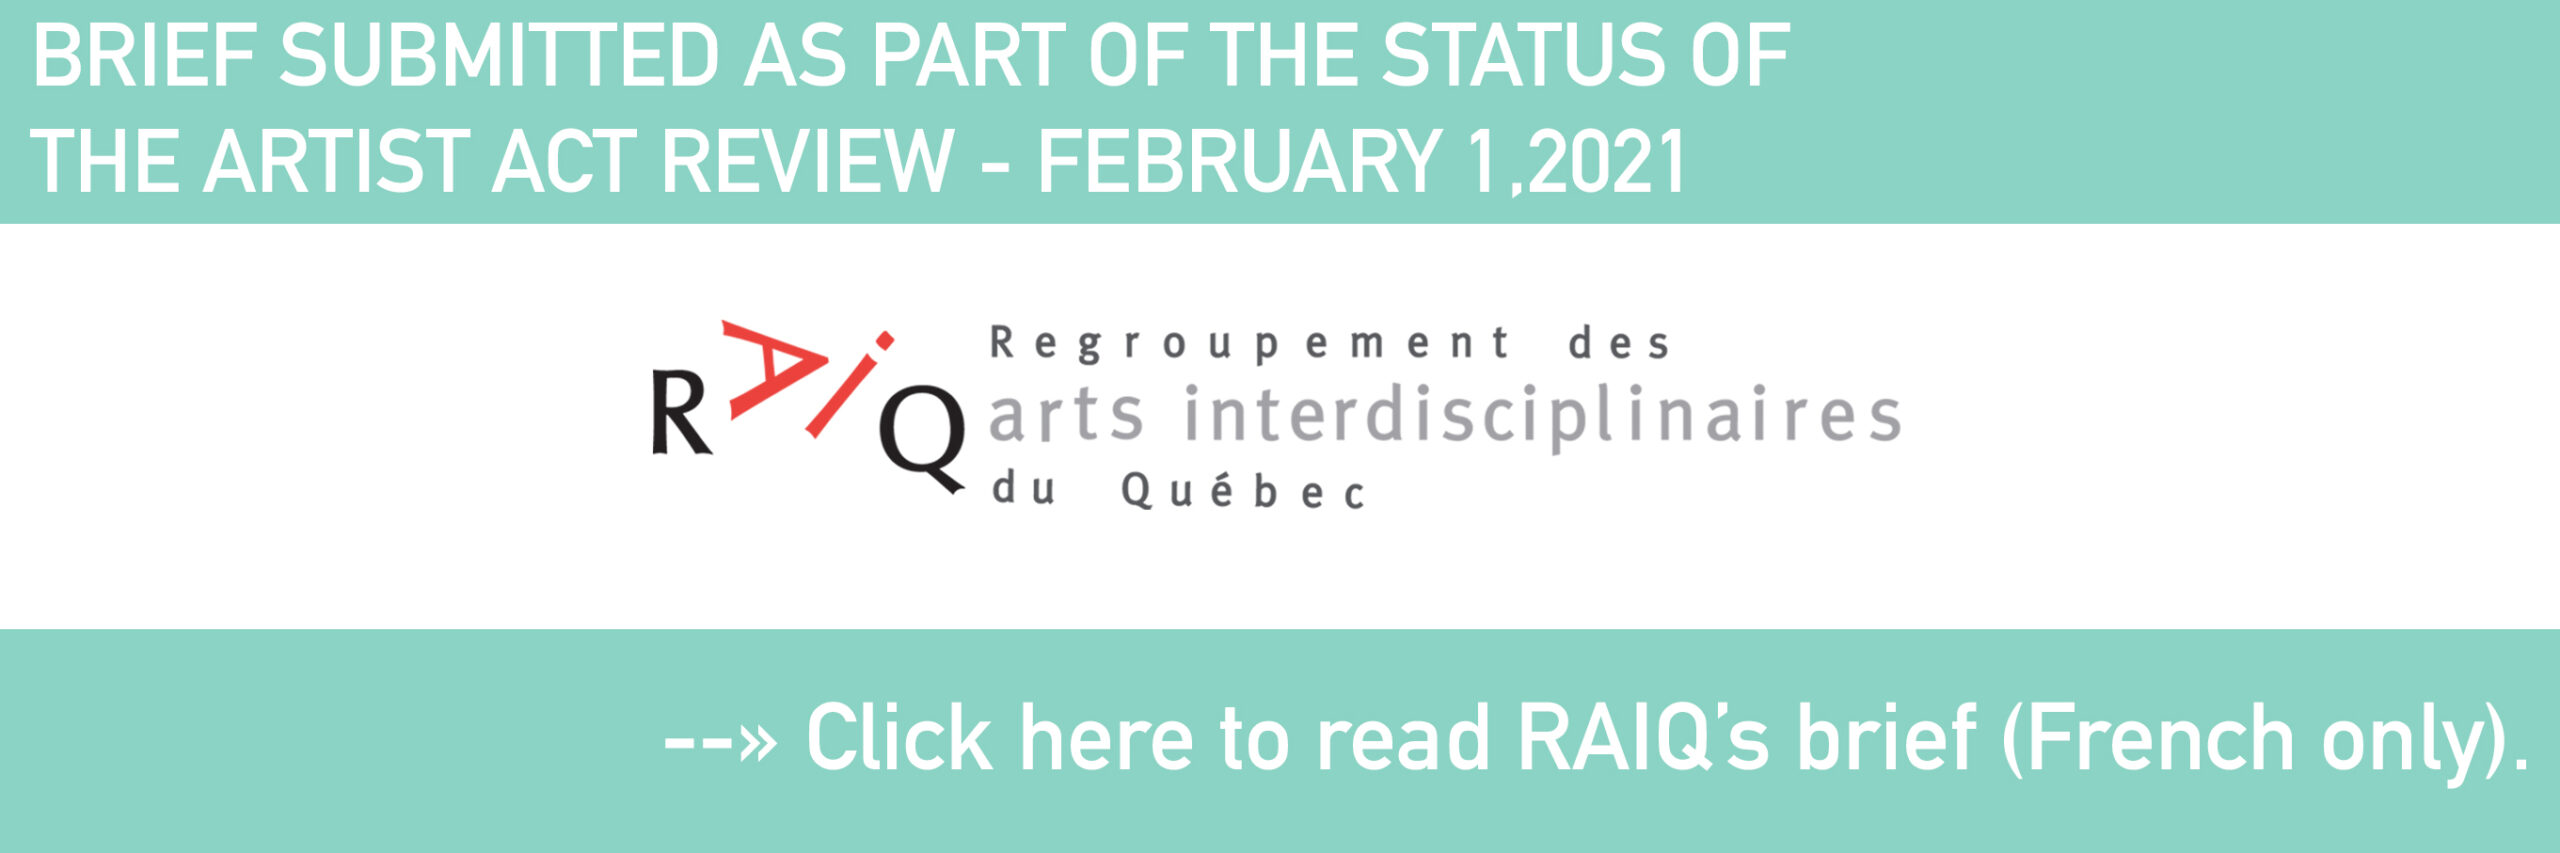 BRIEF SUBMITTED AS PART OF THE STATUS OF THE ARTIST ACT REVIEW - FEBRUARY 1,2021